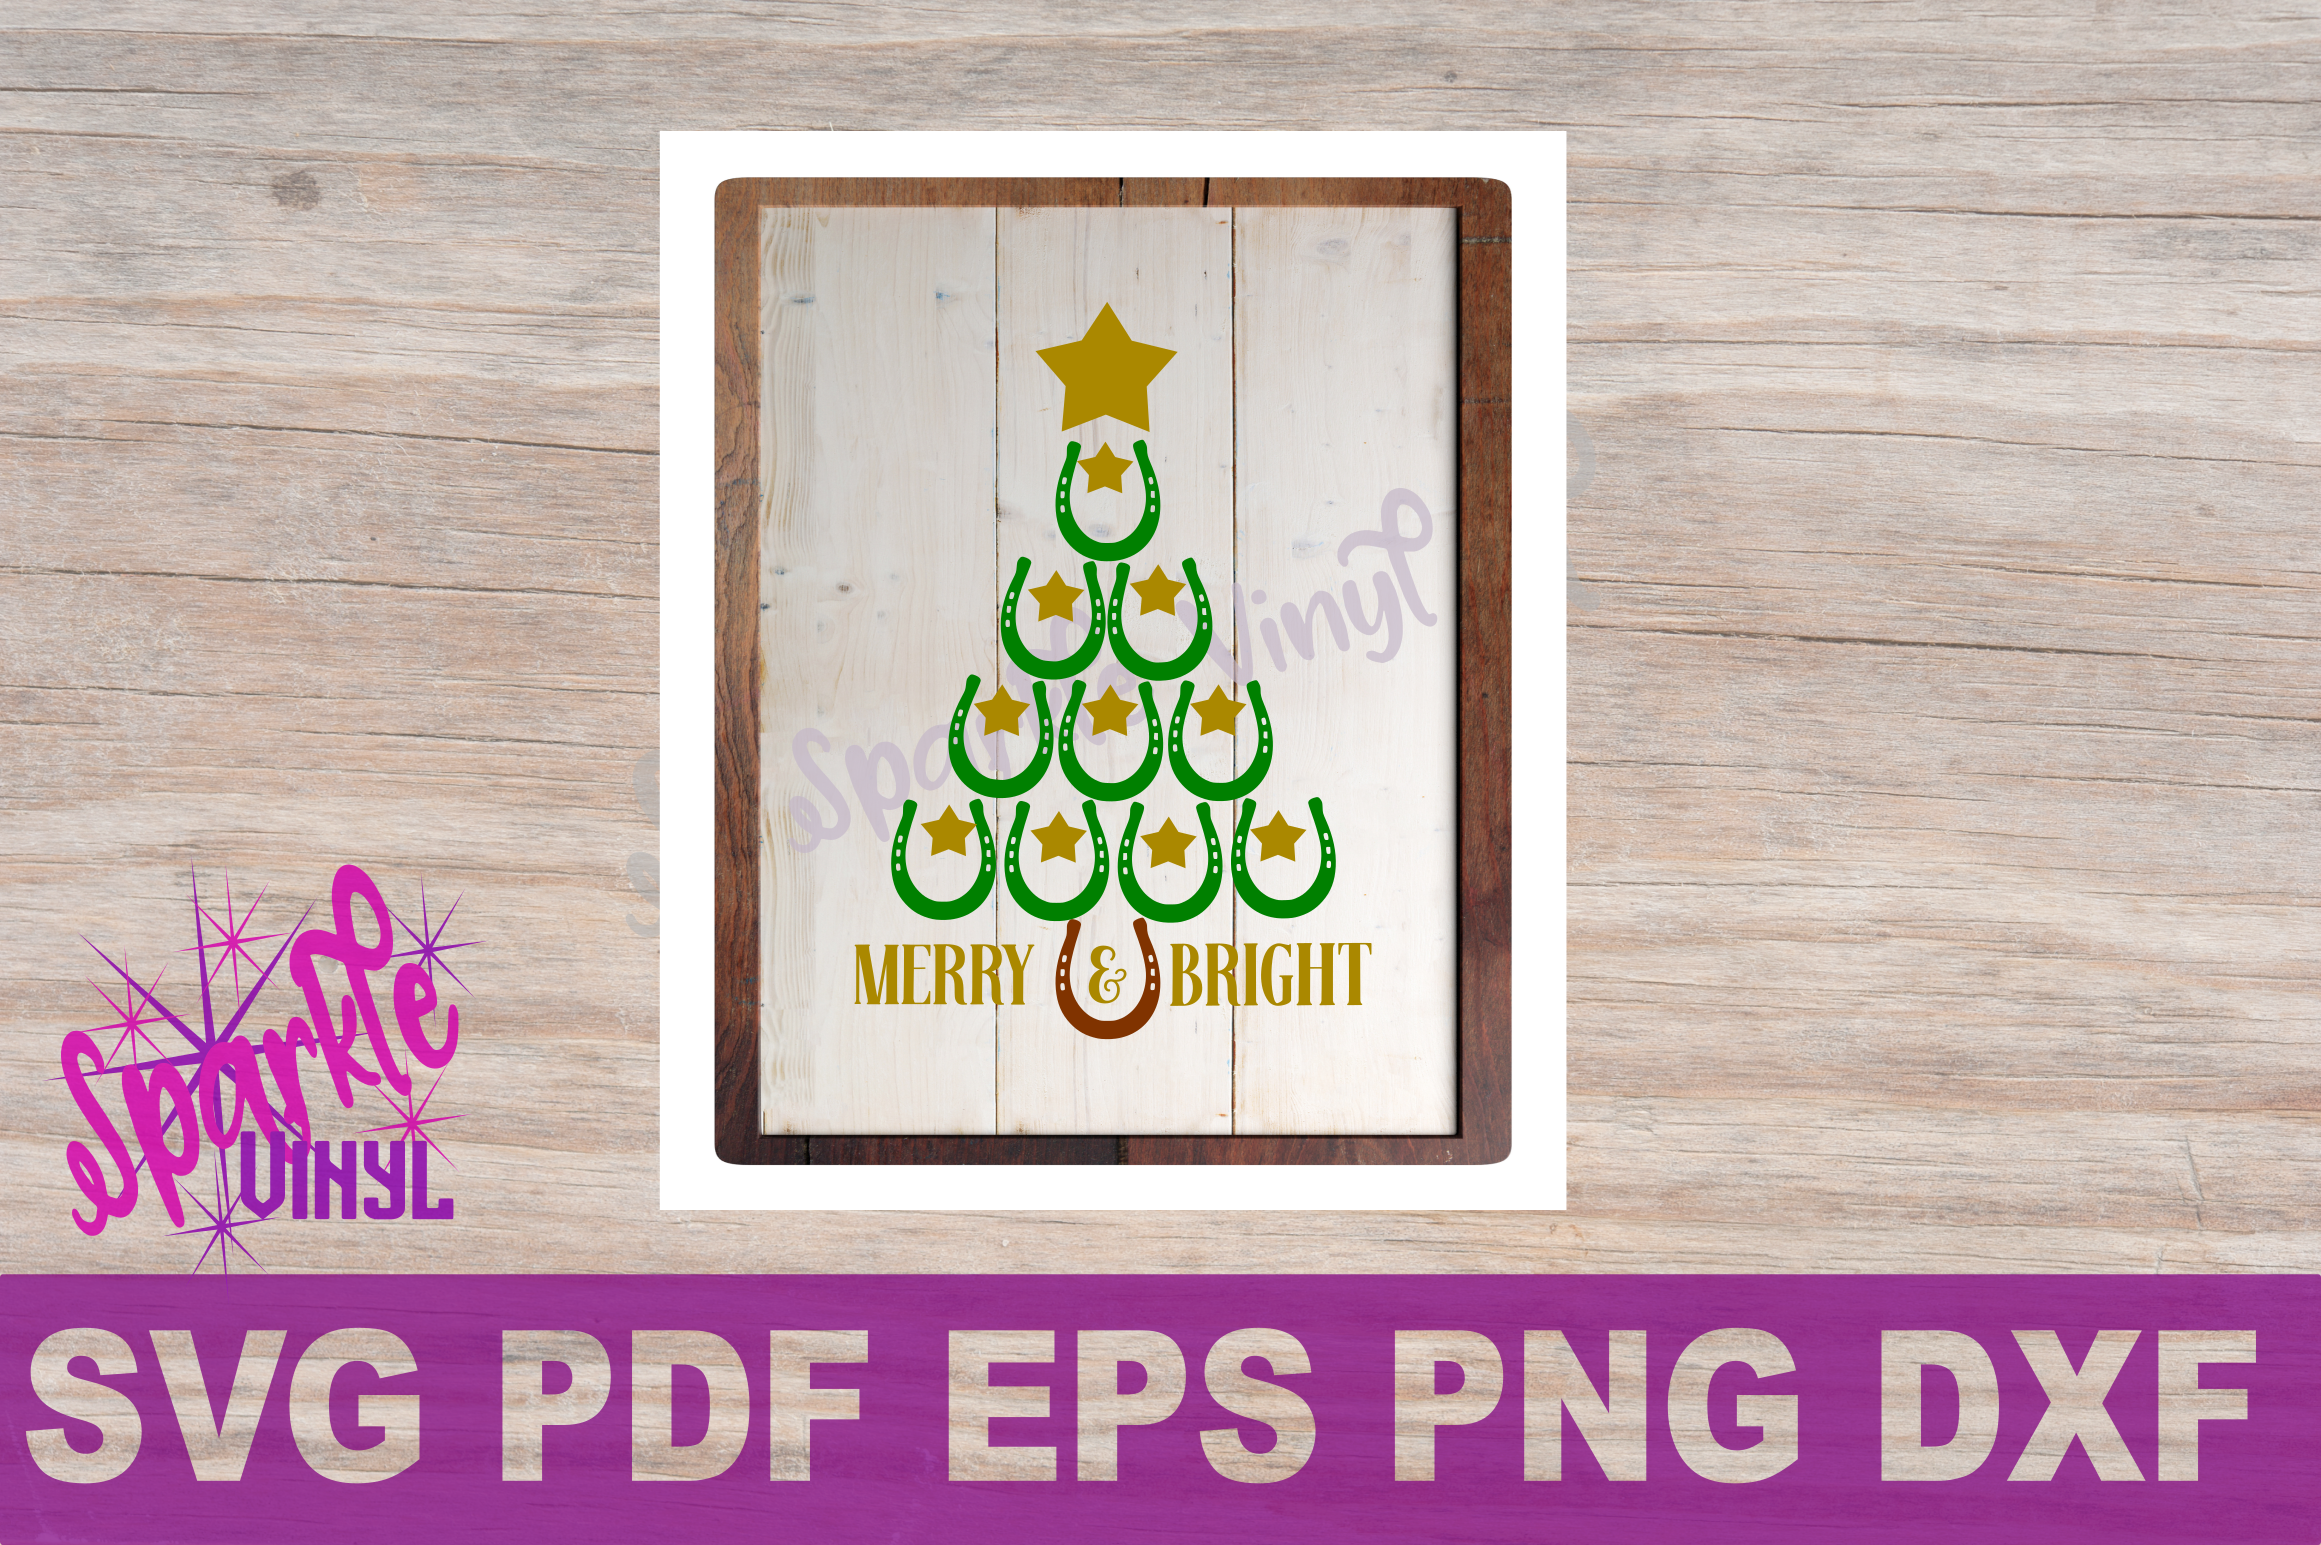 SVG Christmas Cowboy Cowgirl Christmas Horseshoe Tree Merry and Bright Stars Shirt Printable Svg files for cricut silhouette dxf png pdf eps example image 4